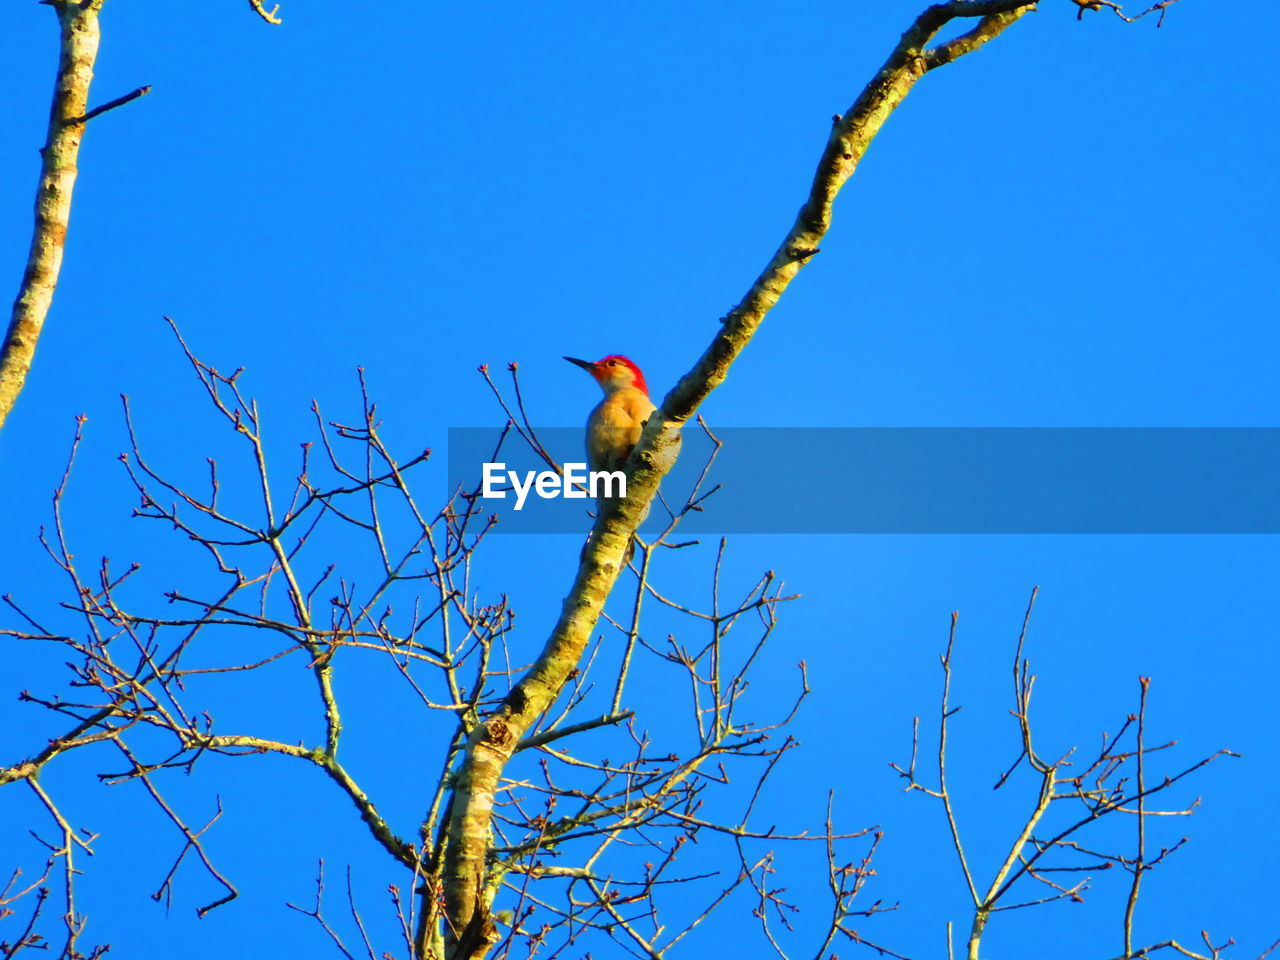 bird, branch, tree, animal themes, animal, low angle view, sky, vertebrate, plant, blue, animals in the wild, one animal, clear sky, animal wildlife, perching, nature, bare tree, no people, day, beauty in nature, outdoors